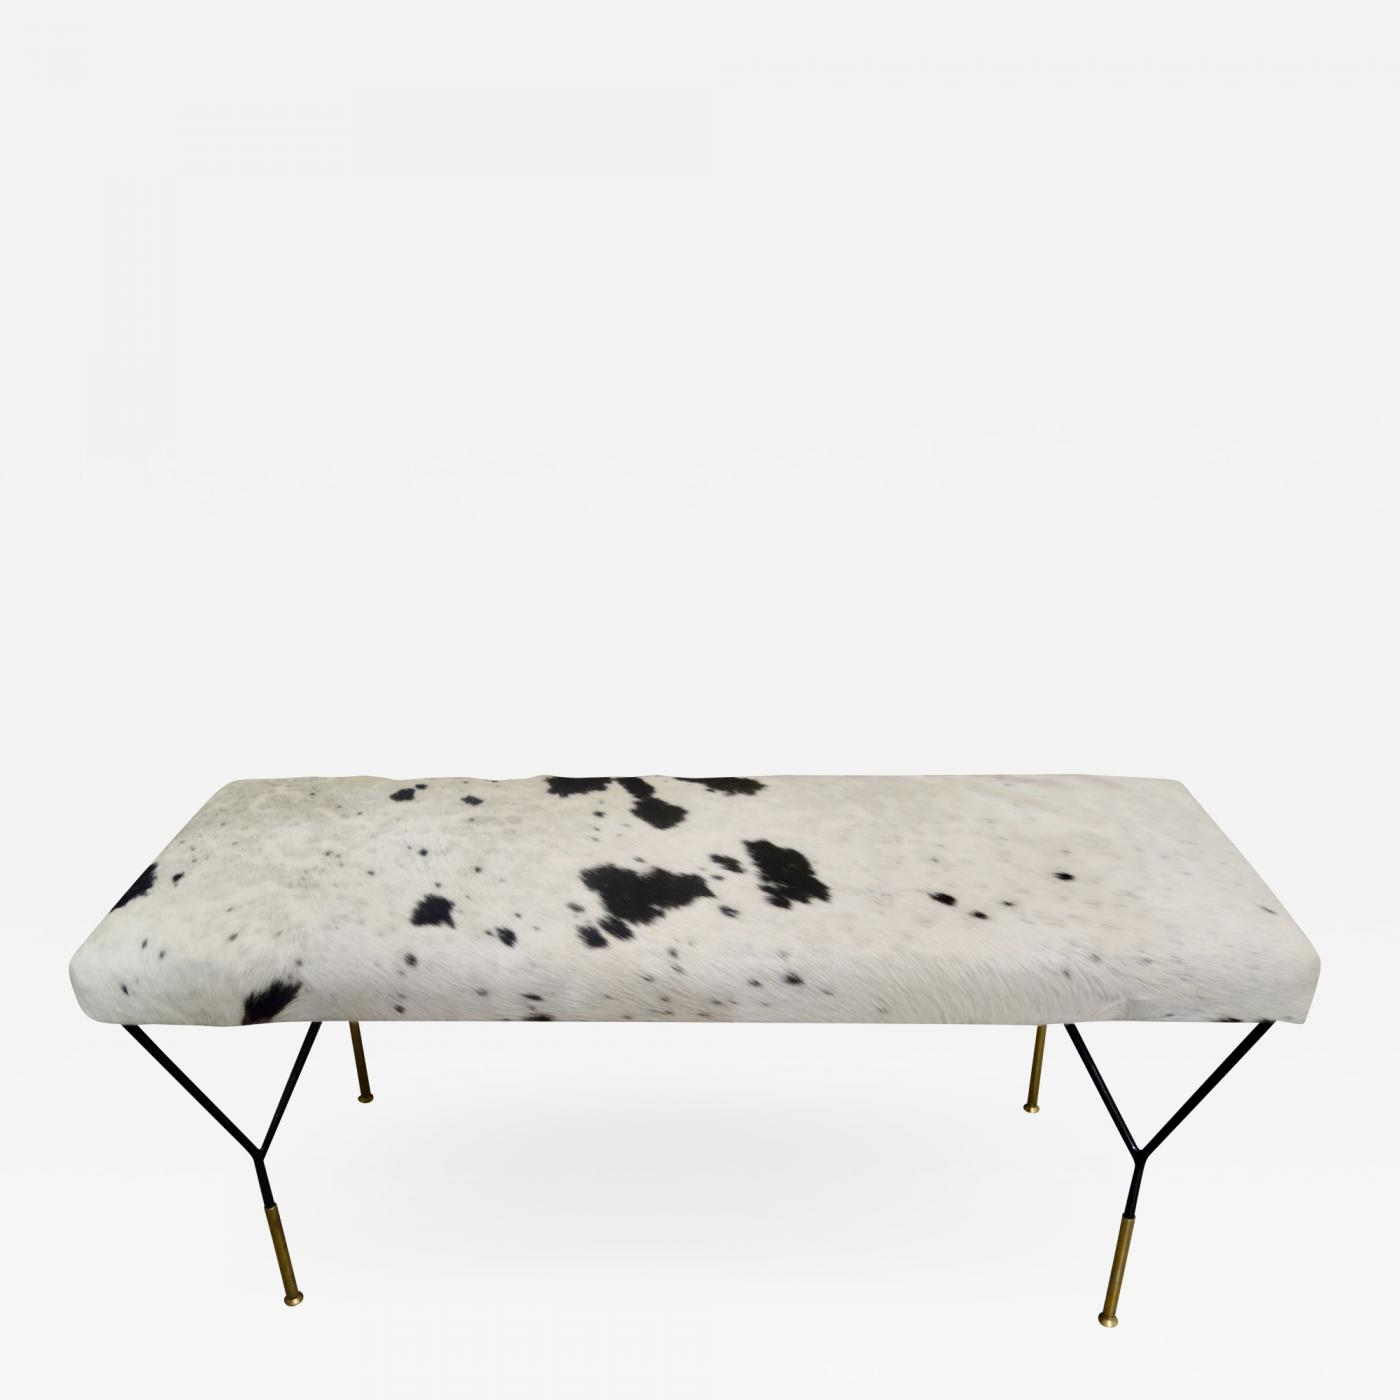 Stupendous Italian Metal And Brass Mid Century Style Bench In White And Black Cowhide Beatyapartments Chair Design Images Beatyapartmentscom